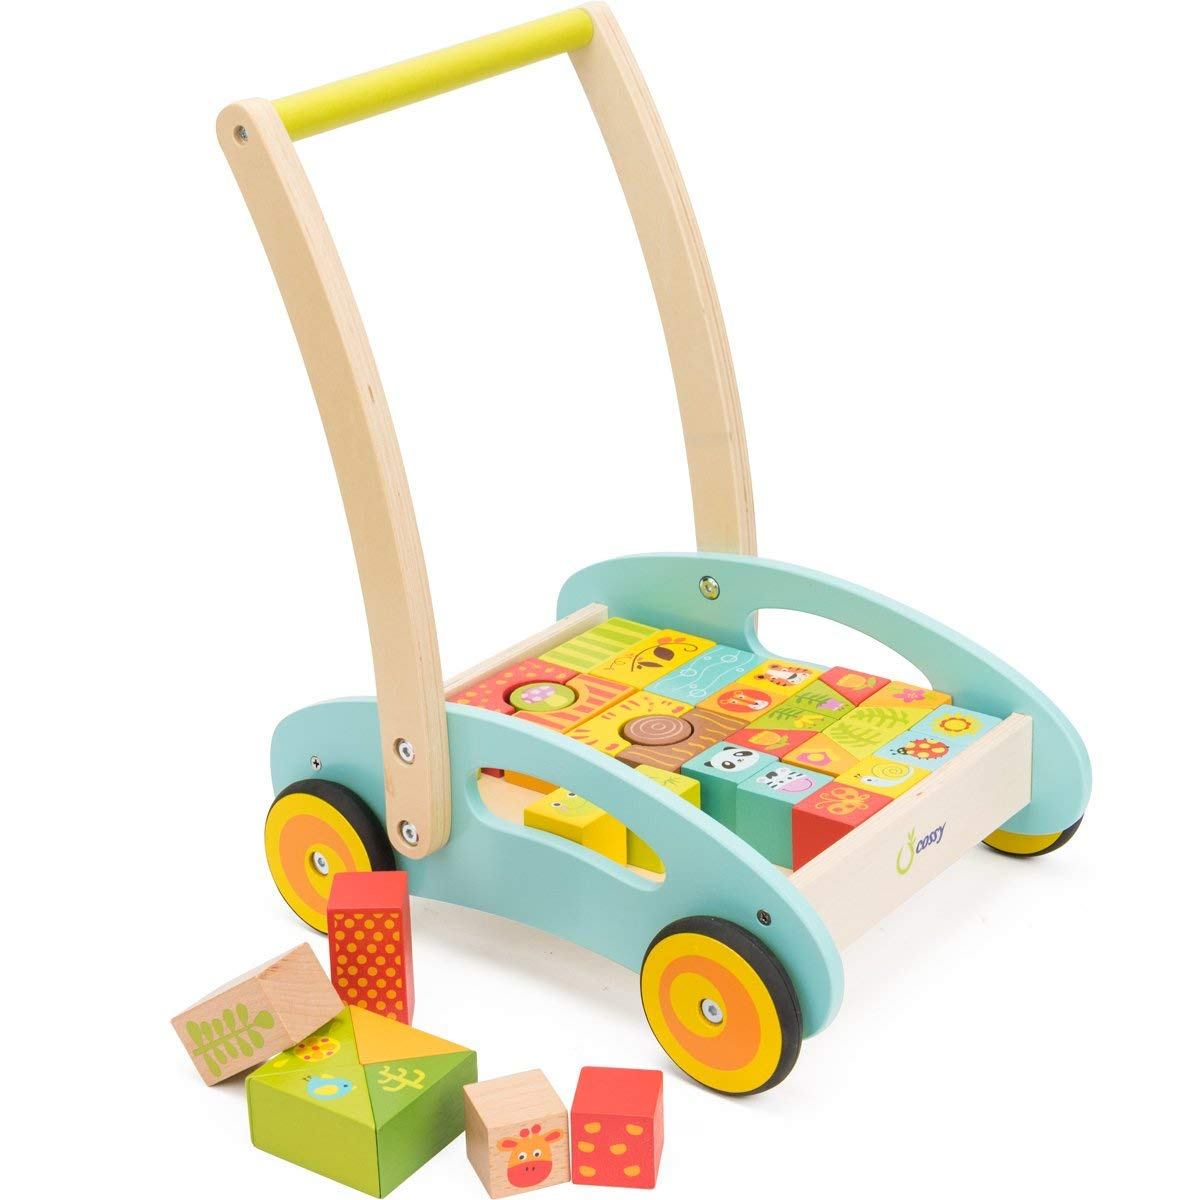 cossy Wooden Baby Learning Walker Toddler Toys for 1 Year Old Forest Theme Blocks & Roll Cart Push Toy (37 Pcs) Updated Version